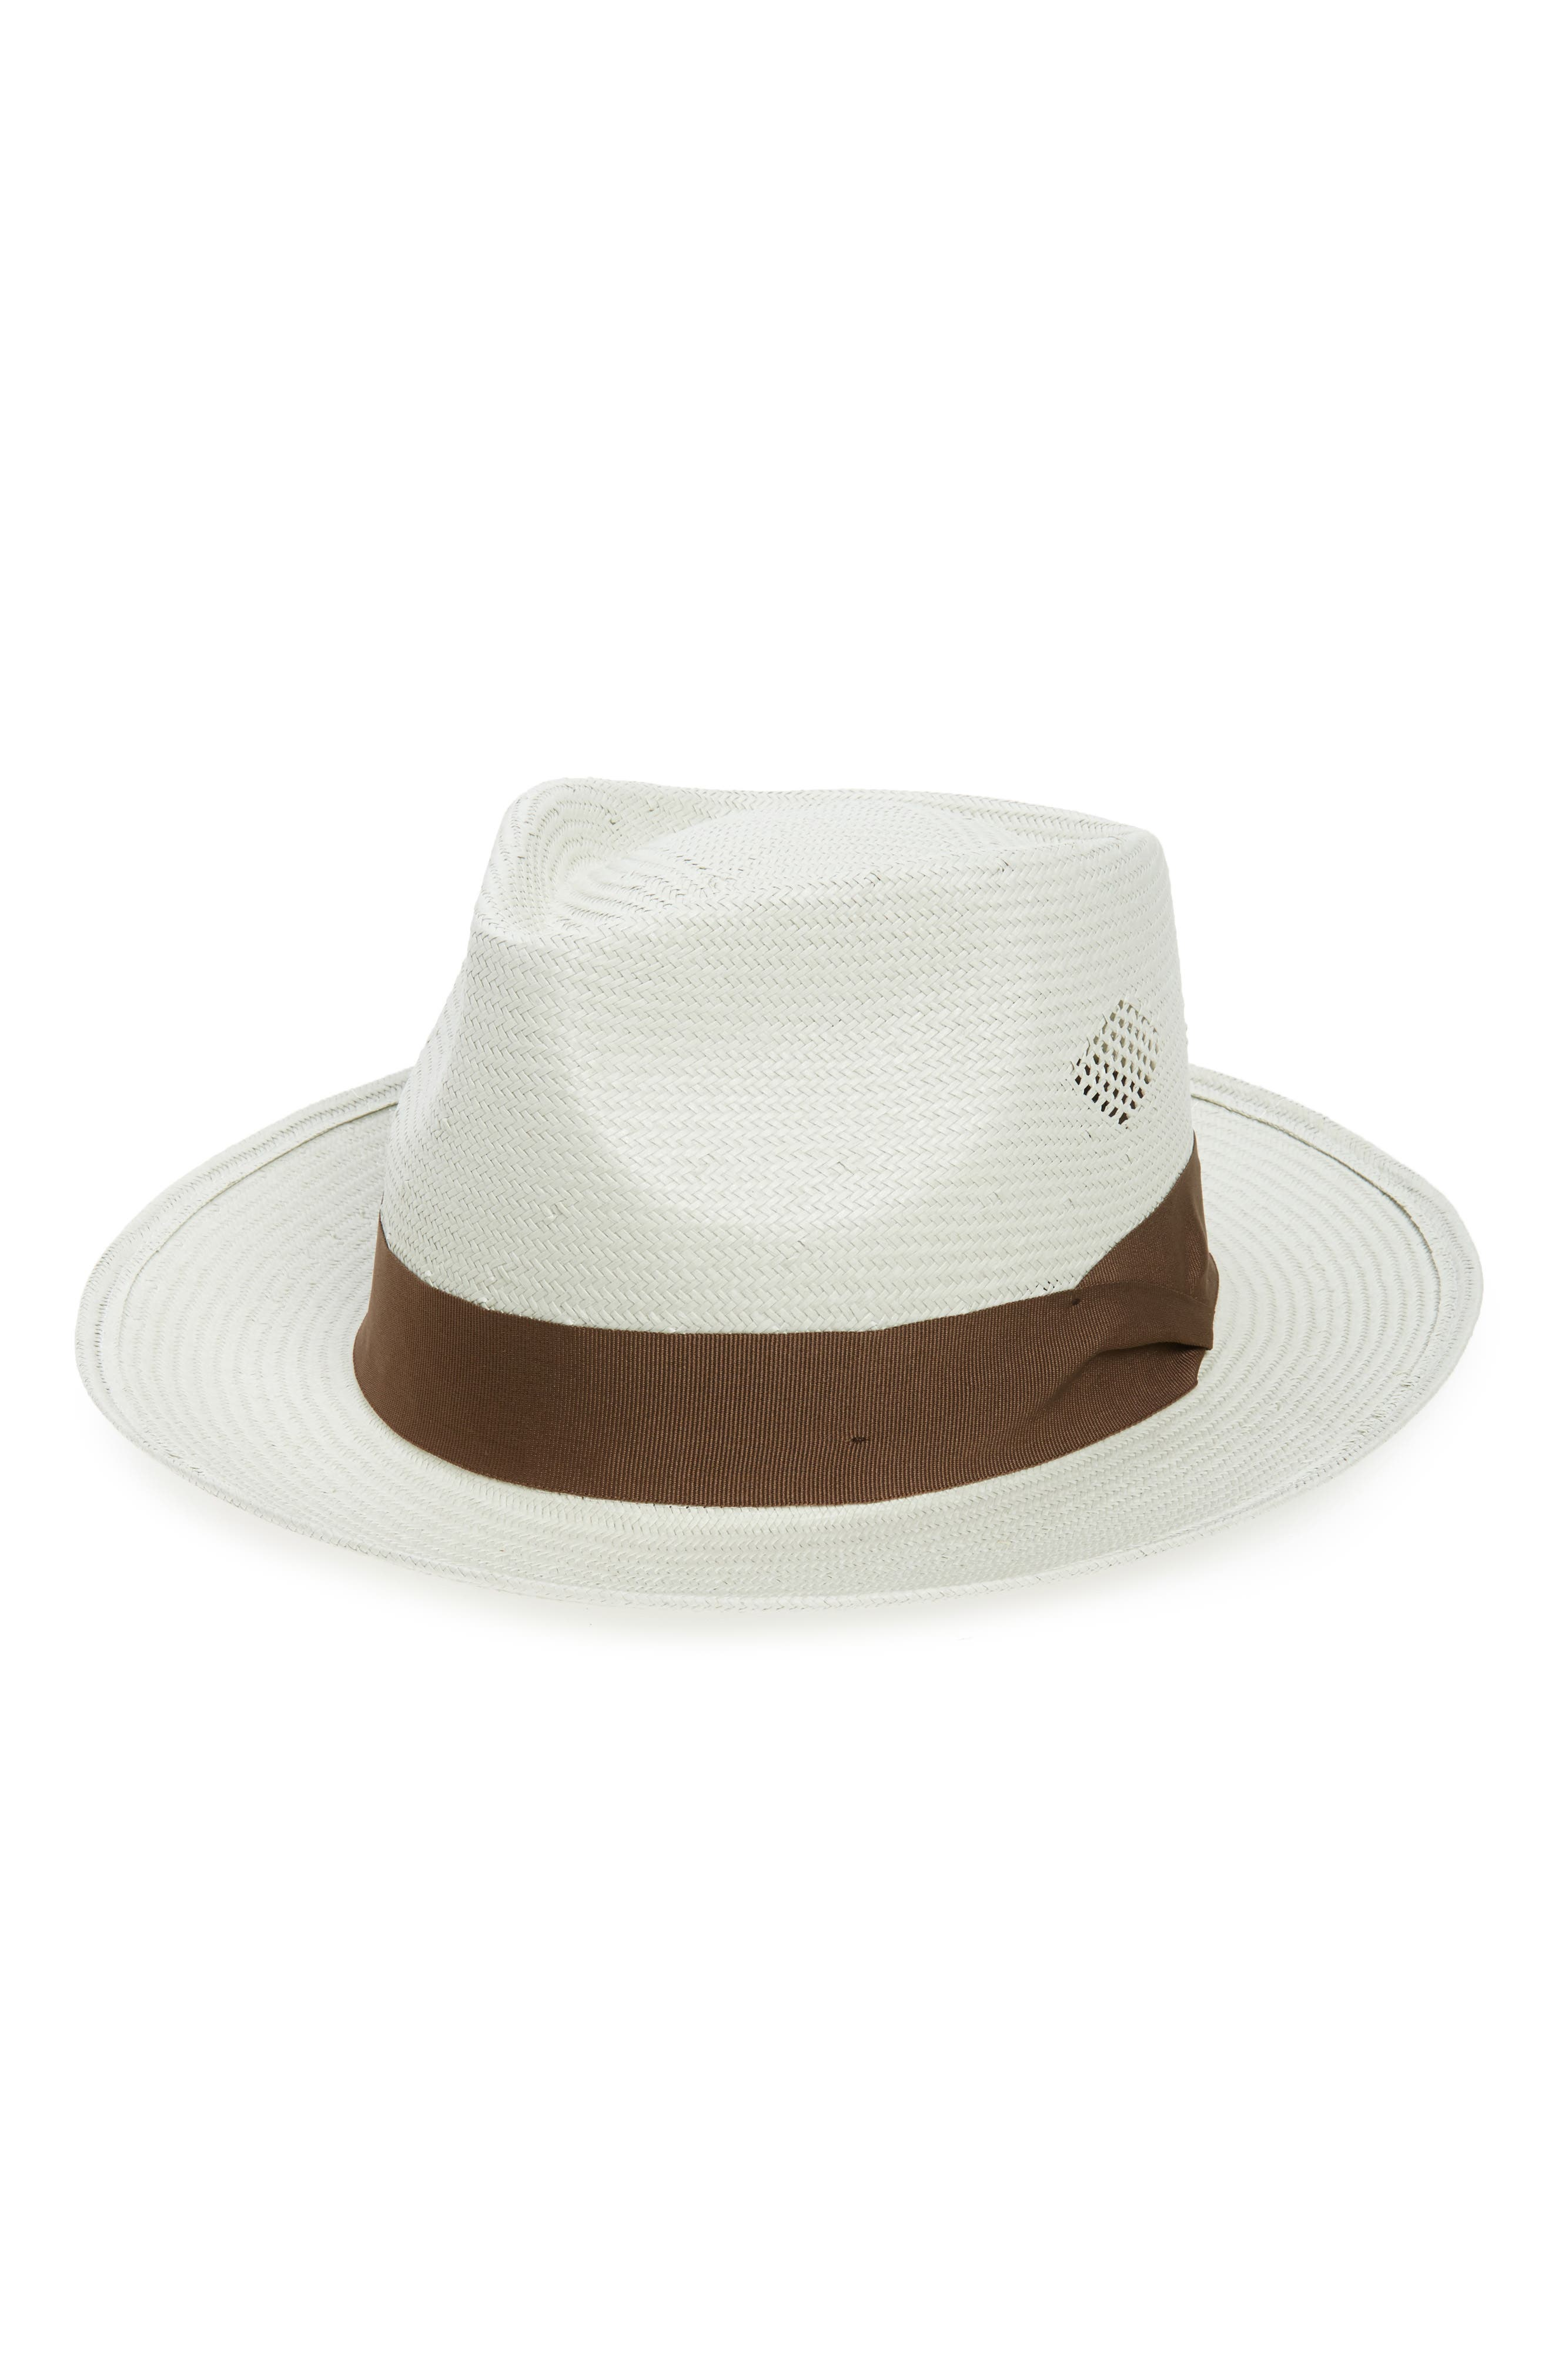 Alternate Image 1 Selected - Brixton Havasu Straw Fedora